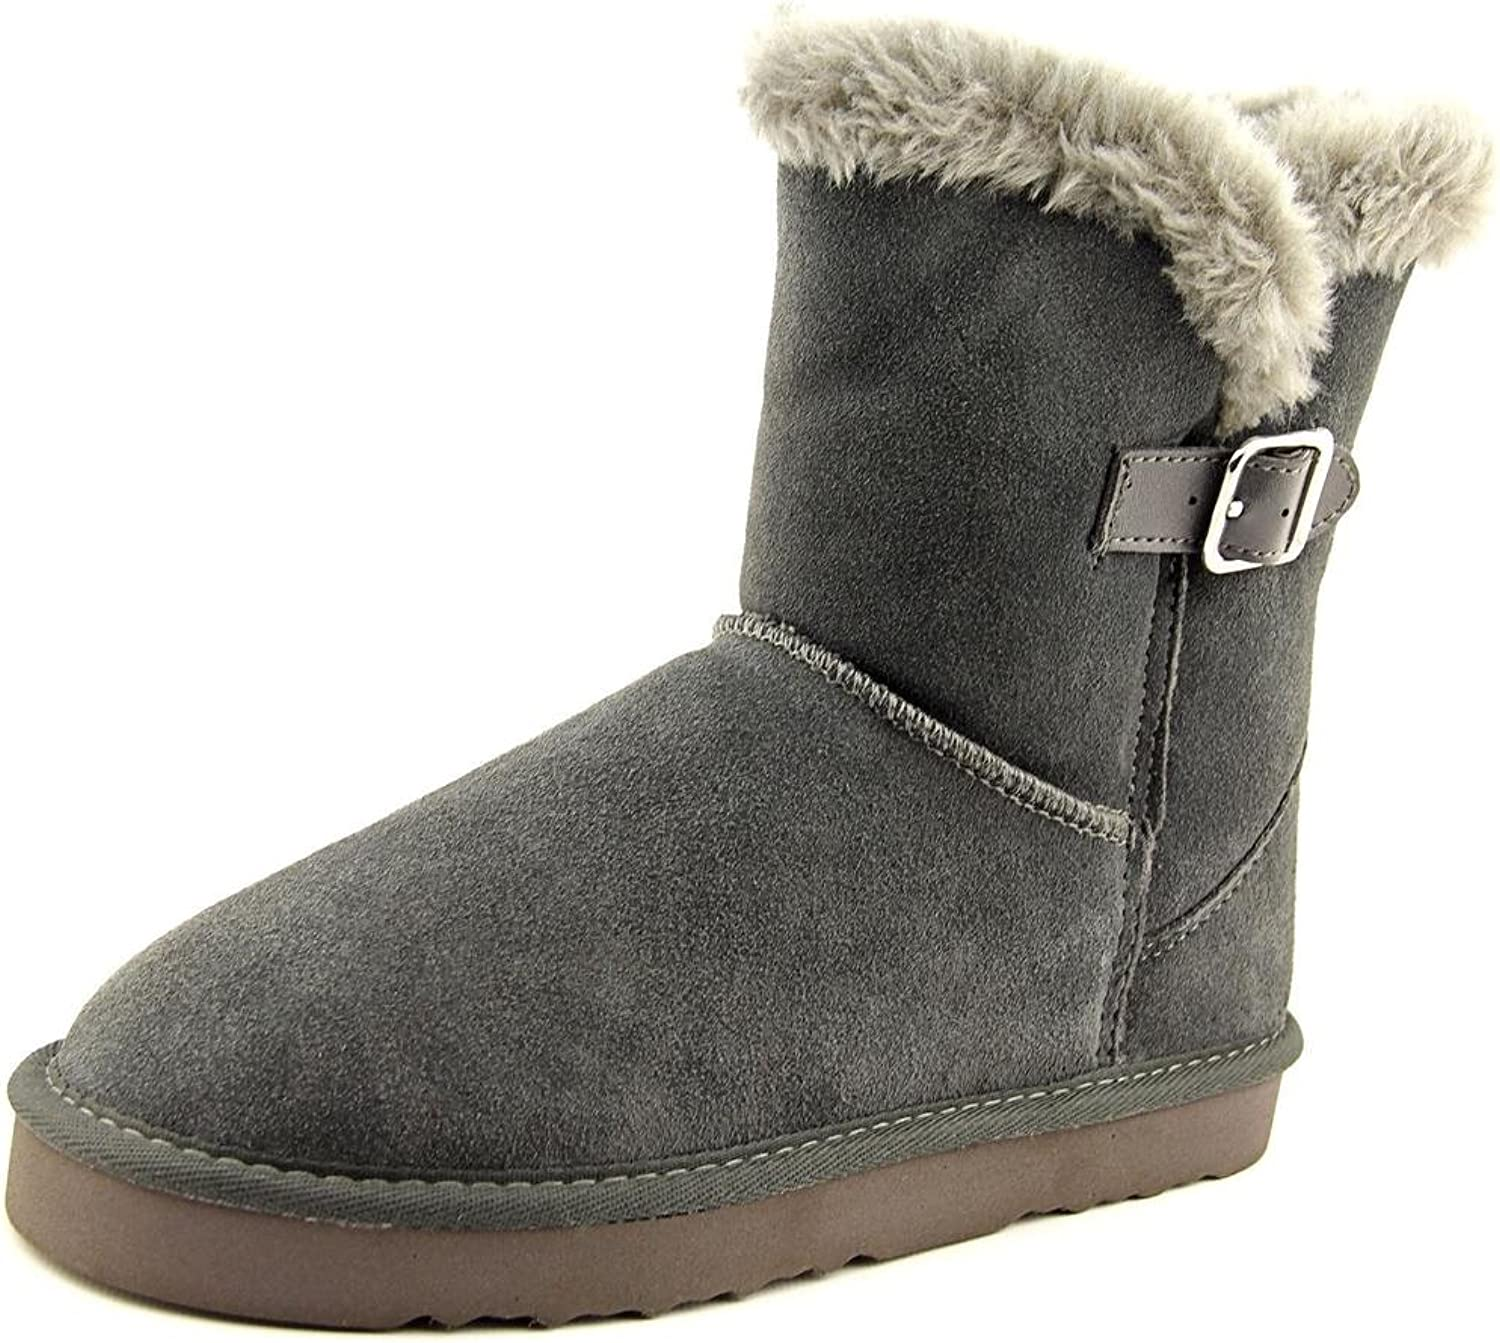 Style & Co. Womens Tiny 2 Leather Closed Toe Ankle Cold Weather, Grey, Size 8.0